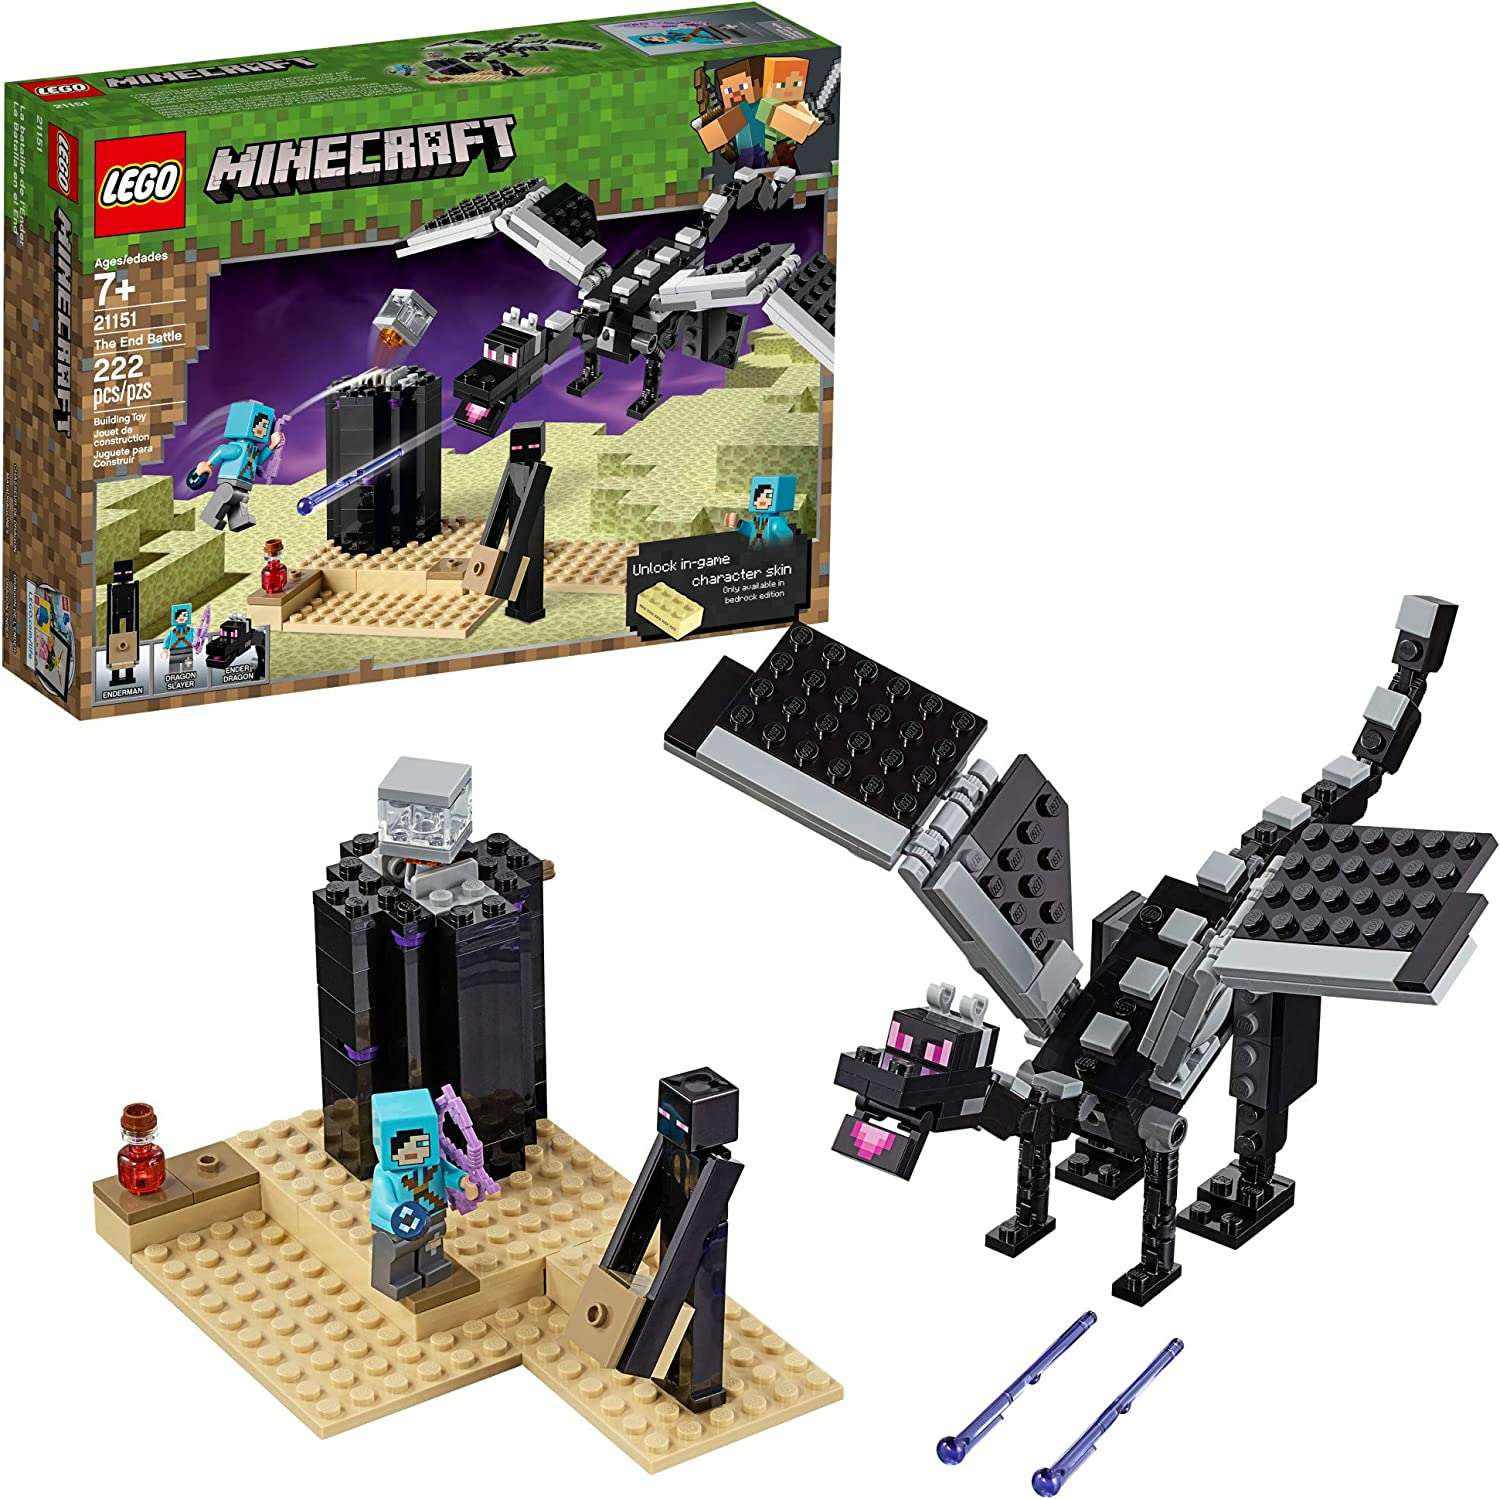 LEGO Minecraft The End Battle 21151 Ender Dragon Building Kit includes Dragon Slayer and Enderman Toy Figures for Dragon Fighting Adventures (222 Pieces)